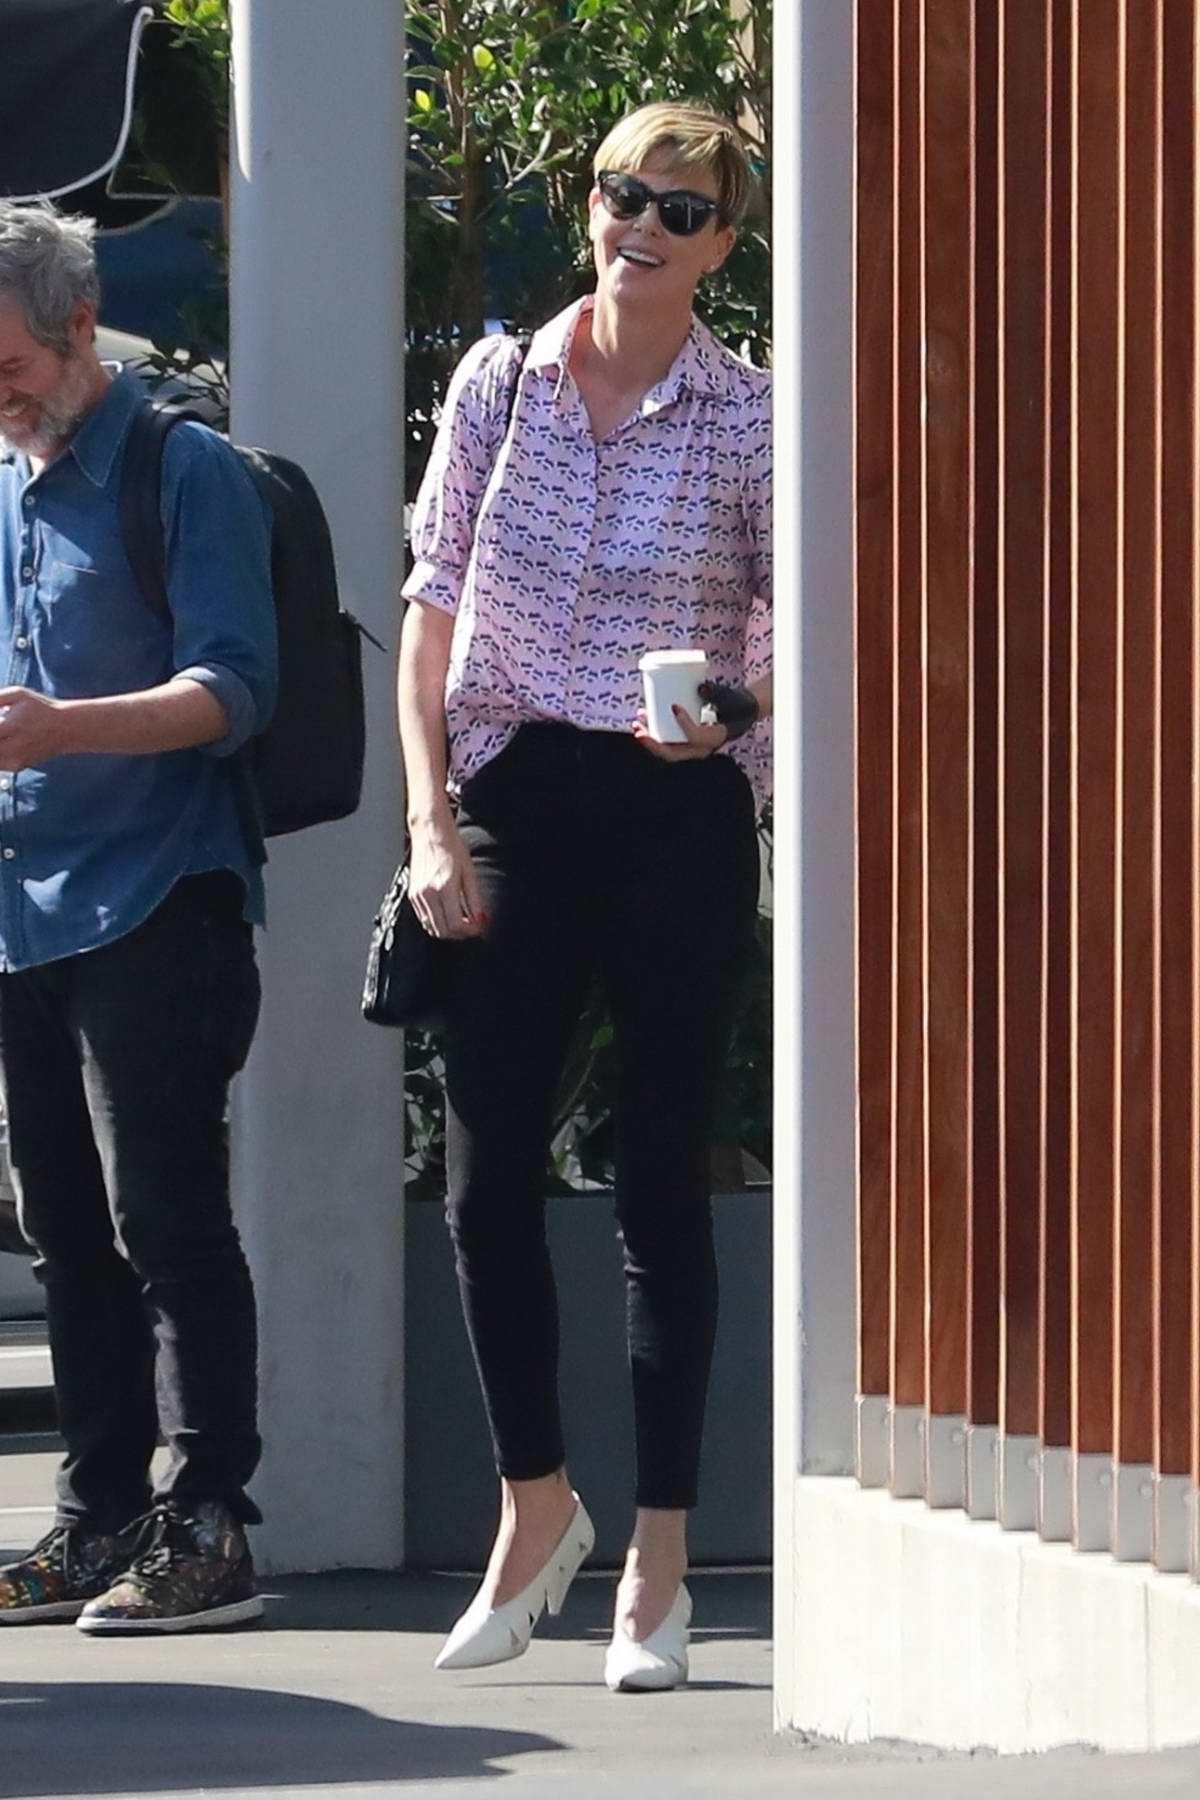 Charlize Theron has a laugh by the Valet booth while out with friends in Culver City, California